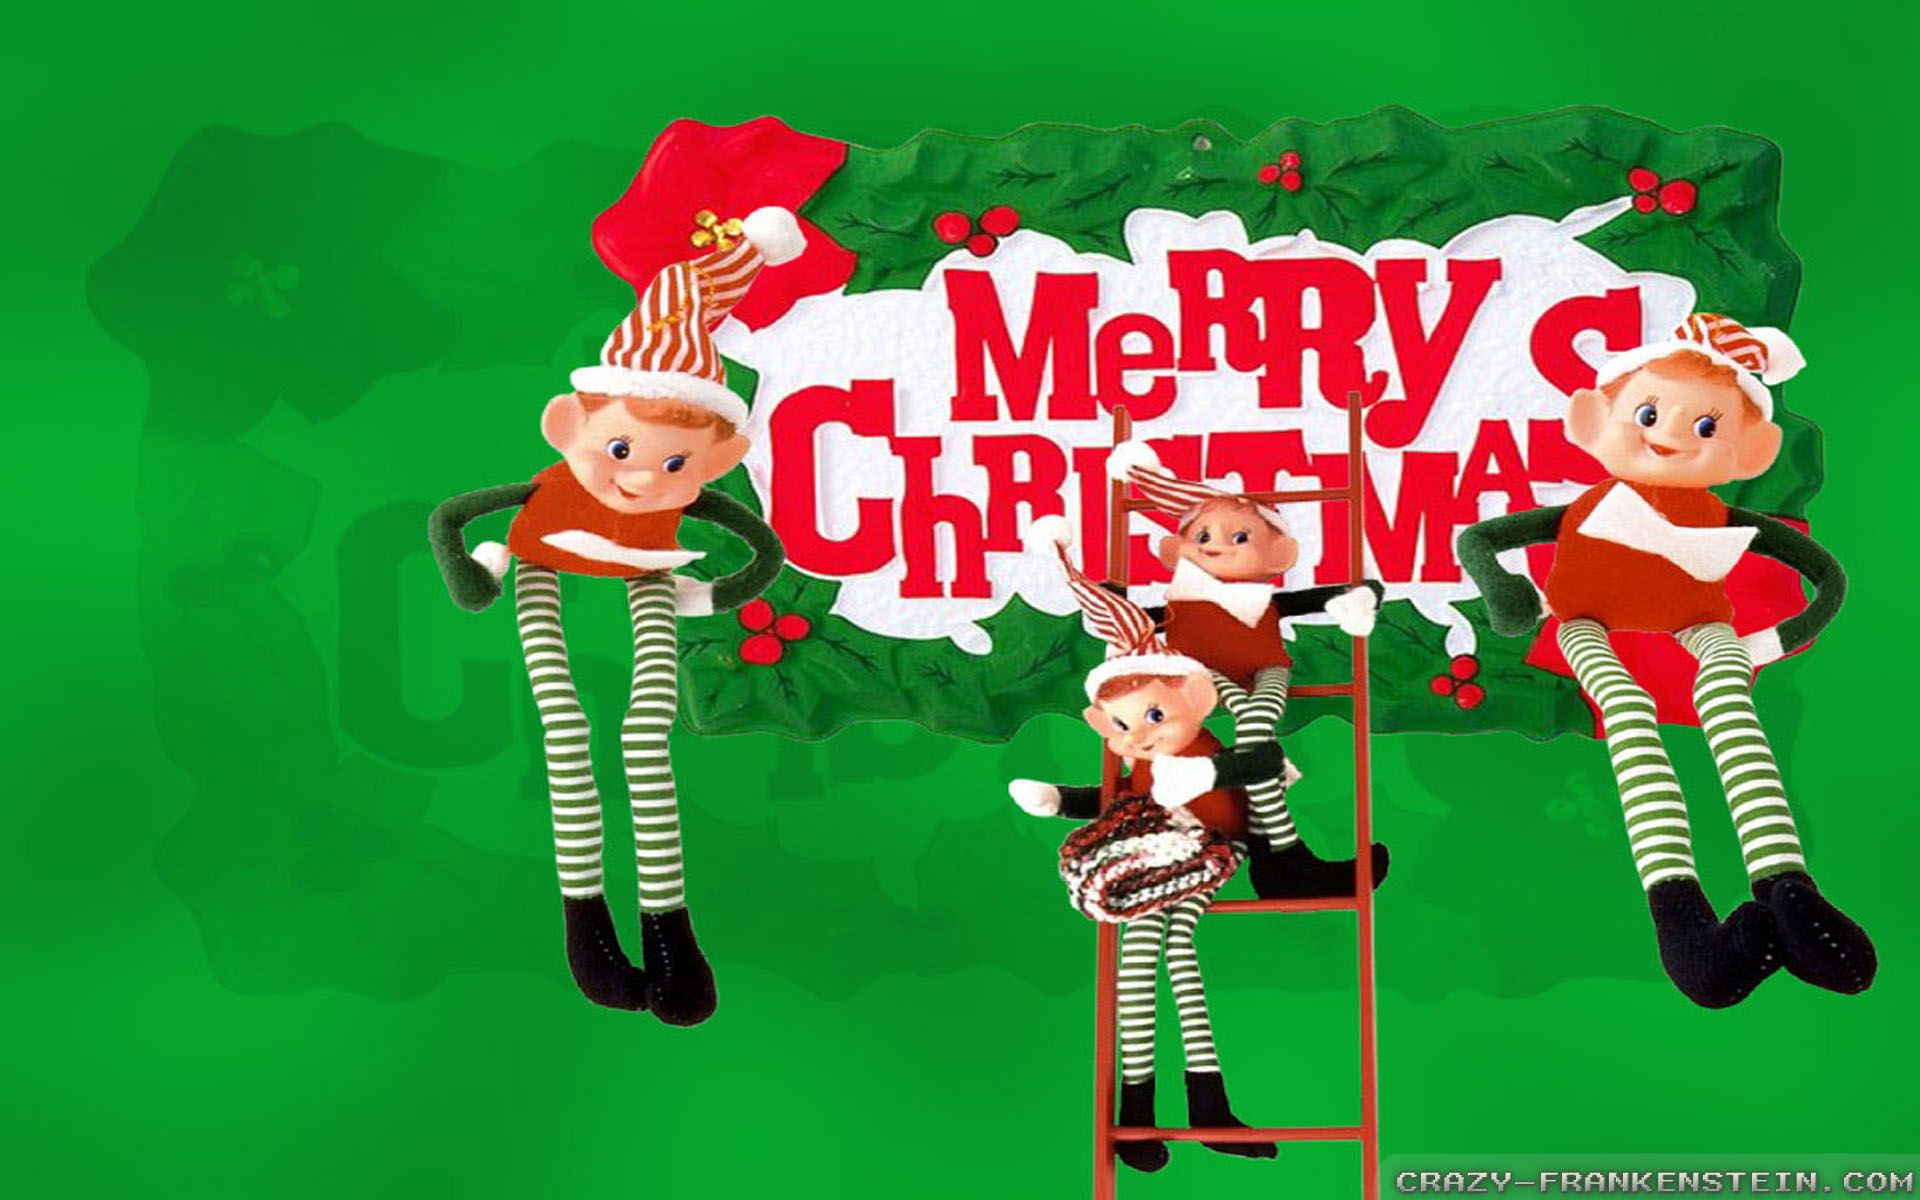 Santa elf wallpapers top free santa elf backgrounds - Christmas elf on the shelf wallpaper ...